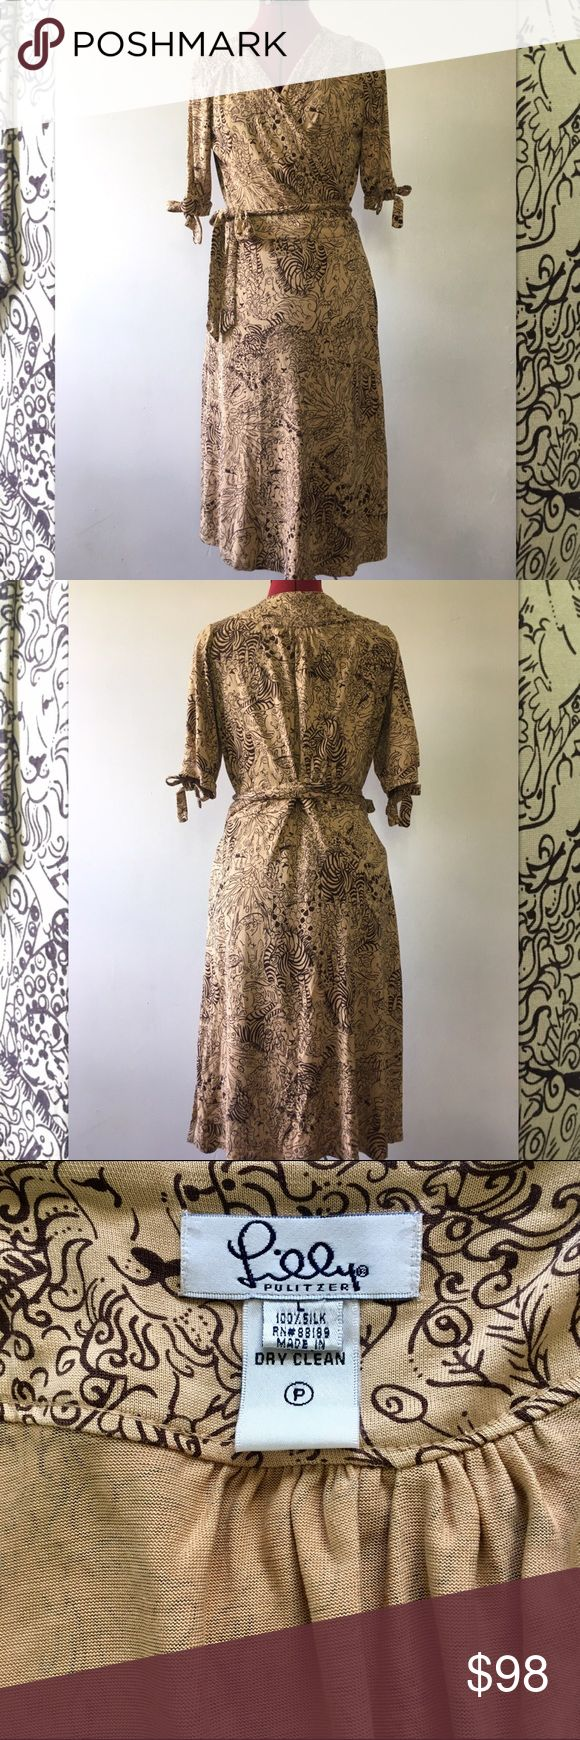 Vintage Lilly Pulitzer Animal Print Wrap Dress Vintage Lilly Pulitzer 100% silk animal print wrap dress in tan and brown. Gently worn like new condition. This is one of my favorite dresses, but I haven't worn it in a few years. Price is firm. Lilly Pulitzer Dresses Midi